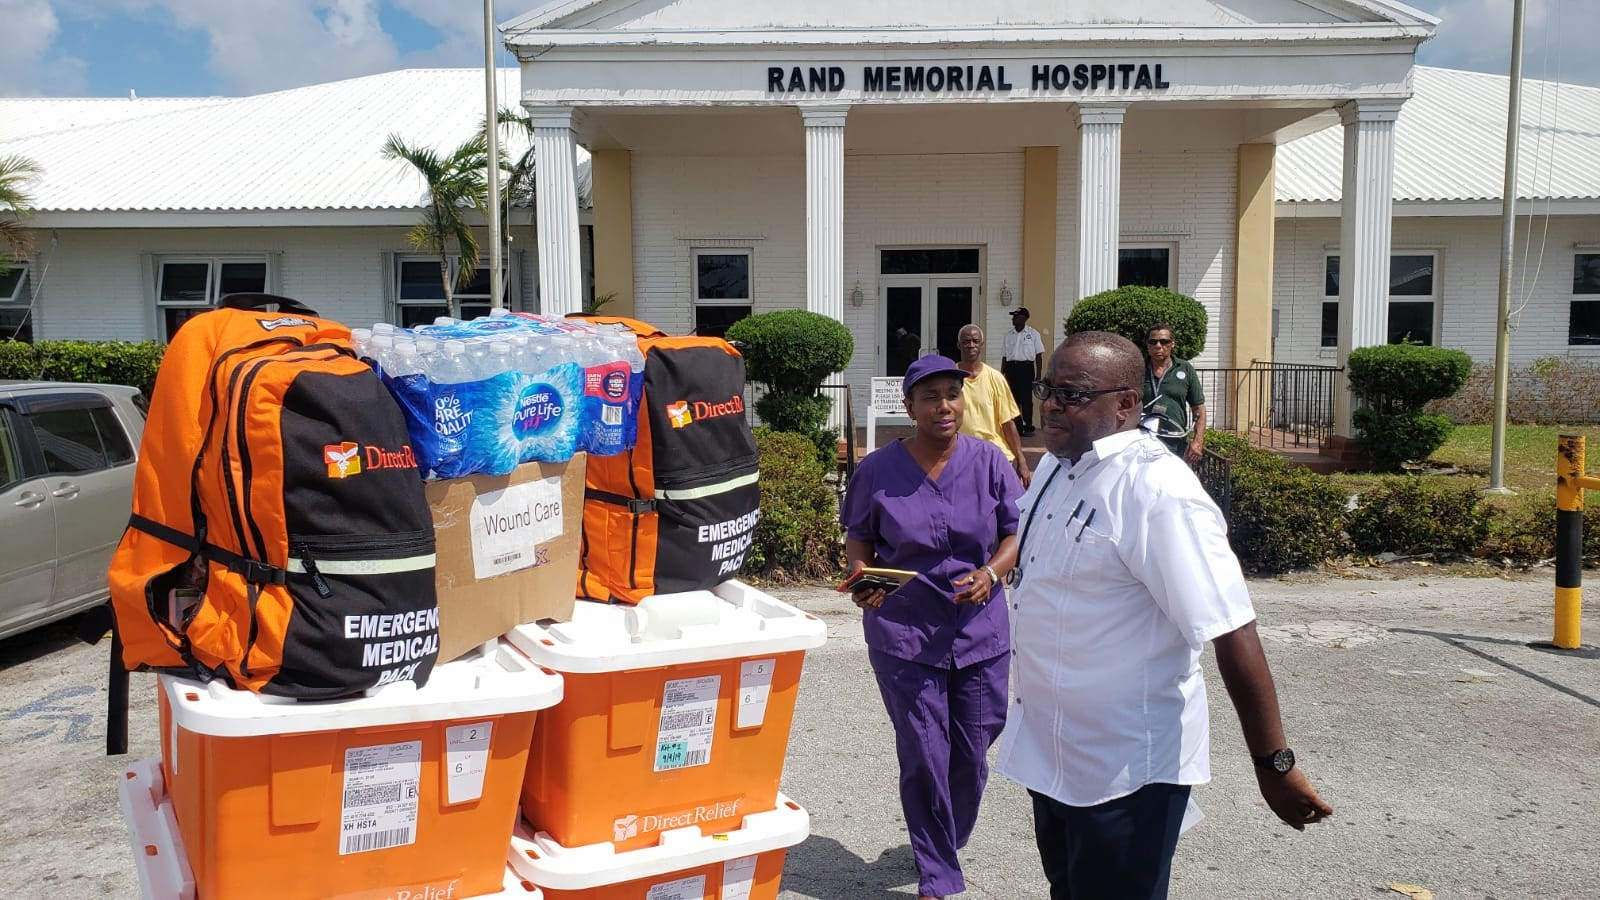 It will be a very long road to recovery for the people and communities that were devastated by Hurricane Dorian in the Bahamas. Direct Relief has been working very hard to address the immediate health issues as well as to help build a better and more resilient healthcare system for the future.